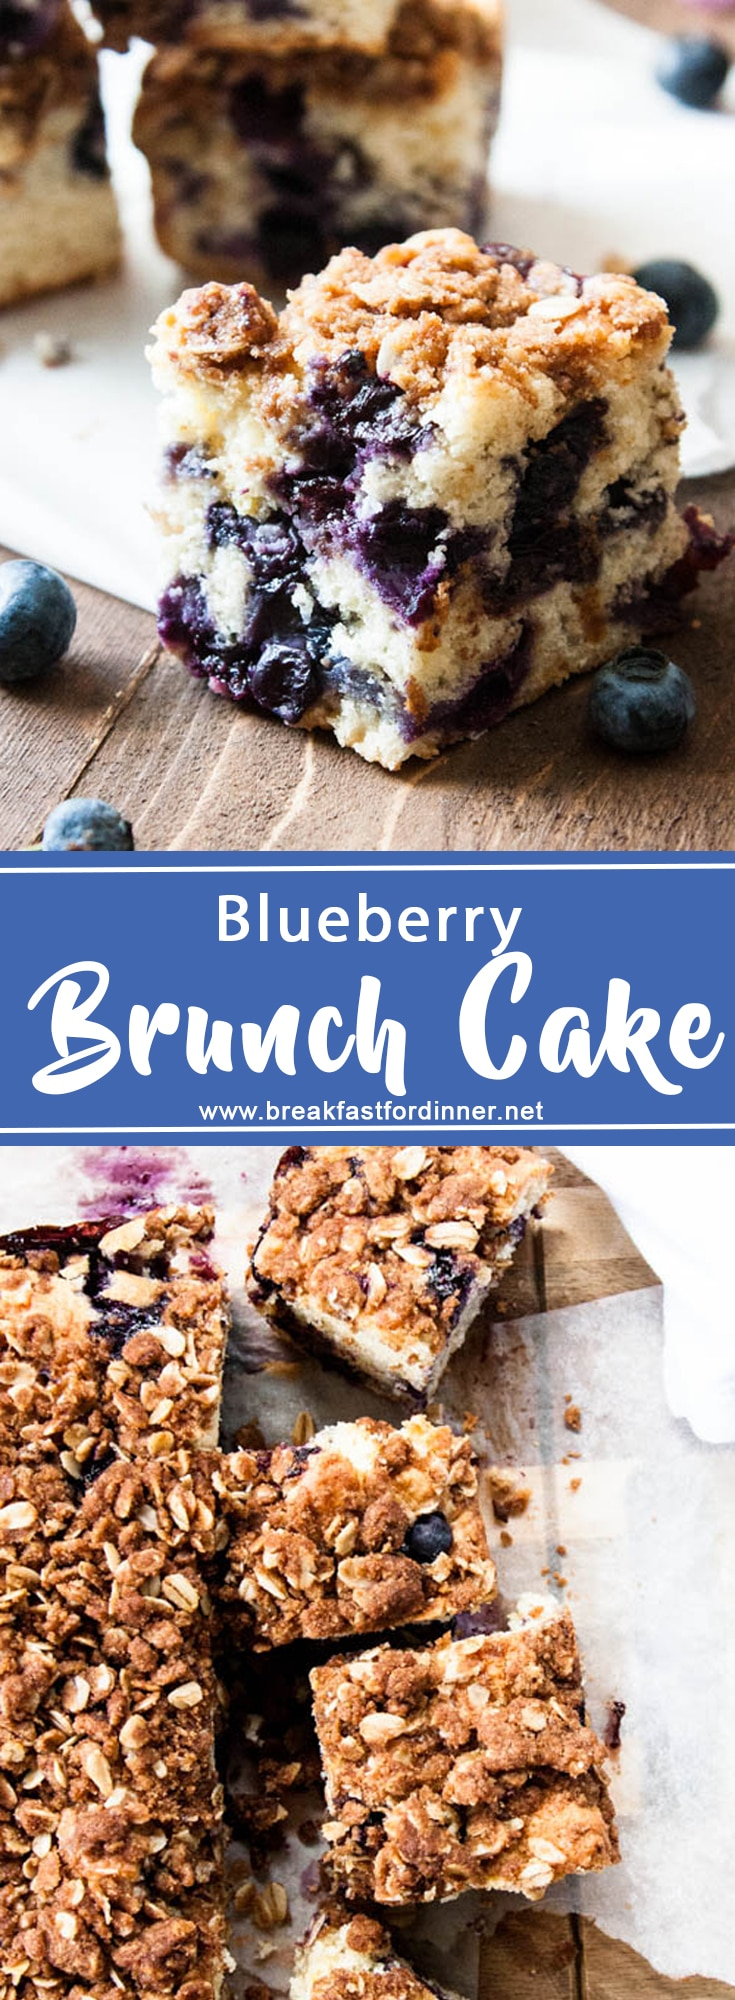 Blueberry Brunch Cake is packed with juicy blueberries, a hint of lemon zest, and generously sprinkled with a crumbly brown sugar oat topping. Perfect for a brunch party!